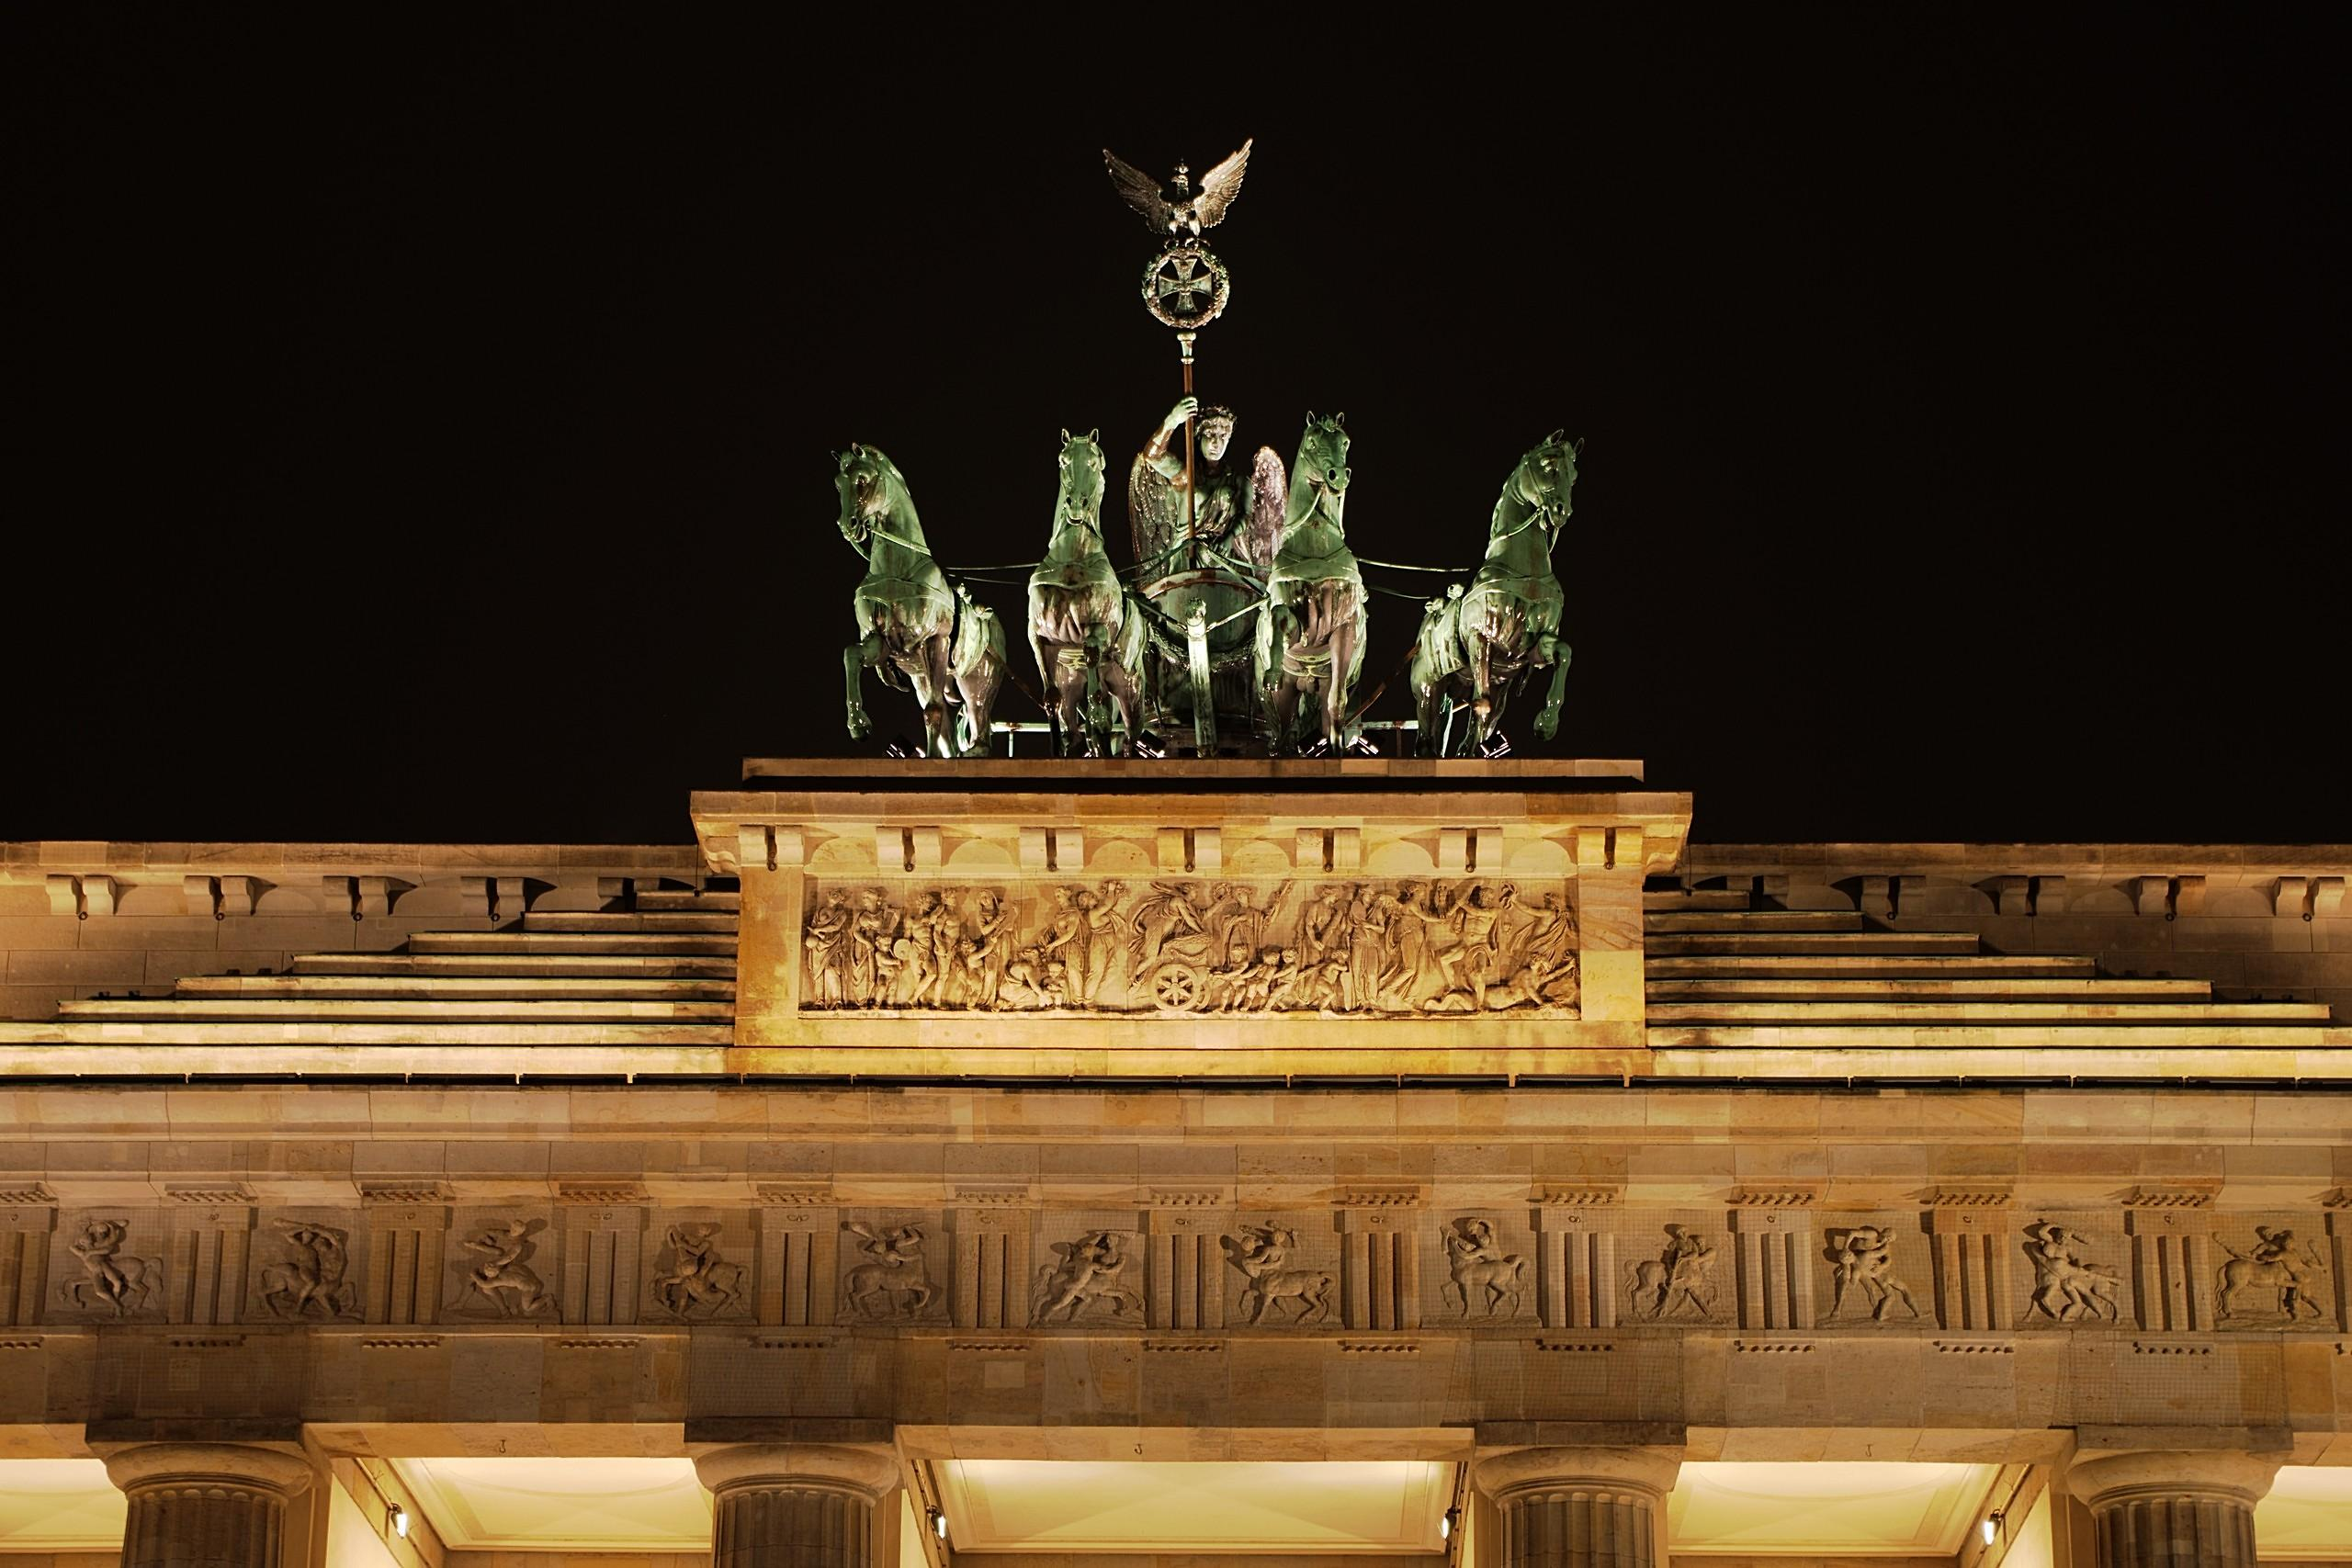 Quadriga at Night